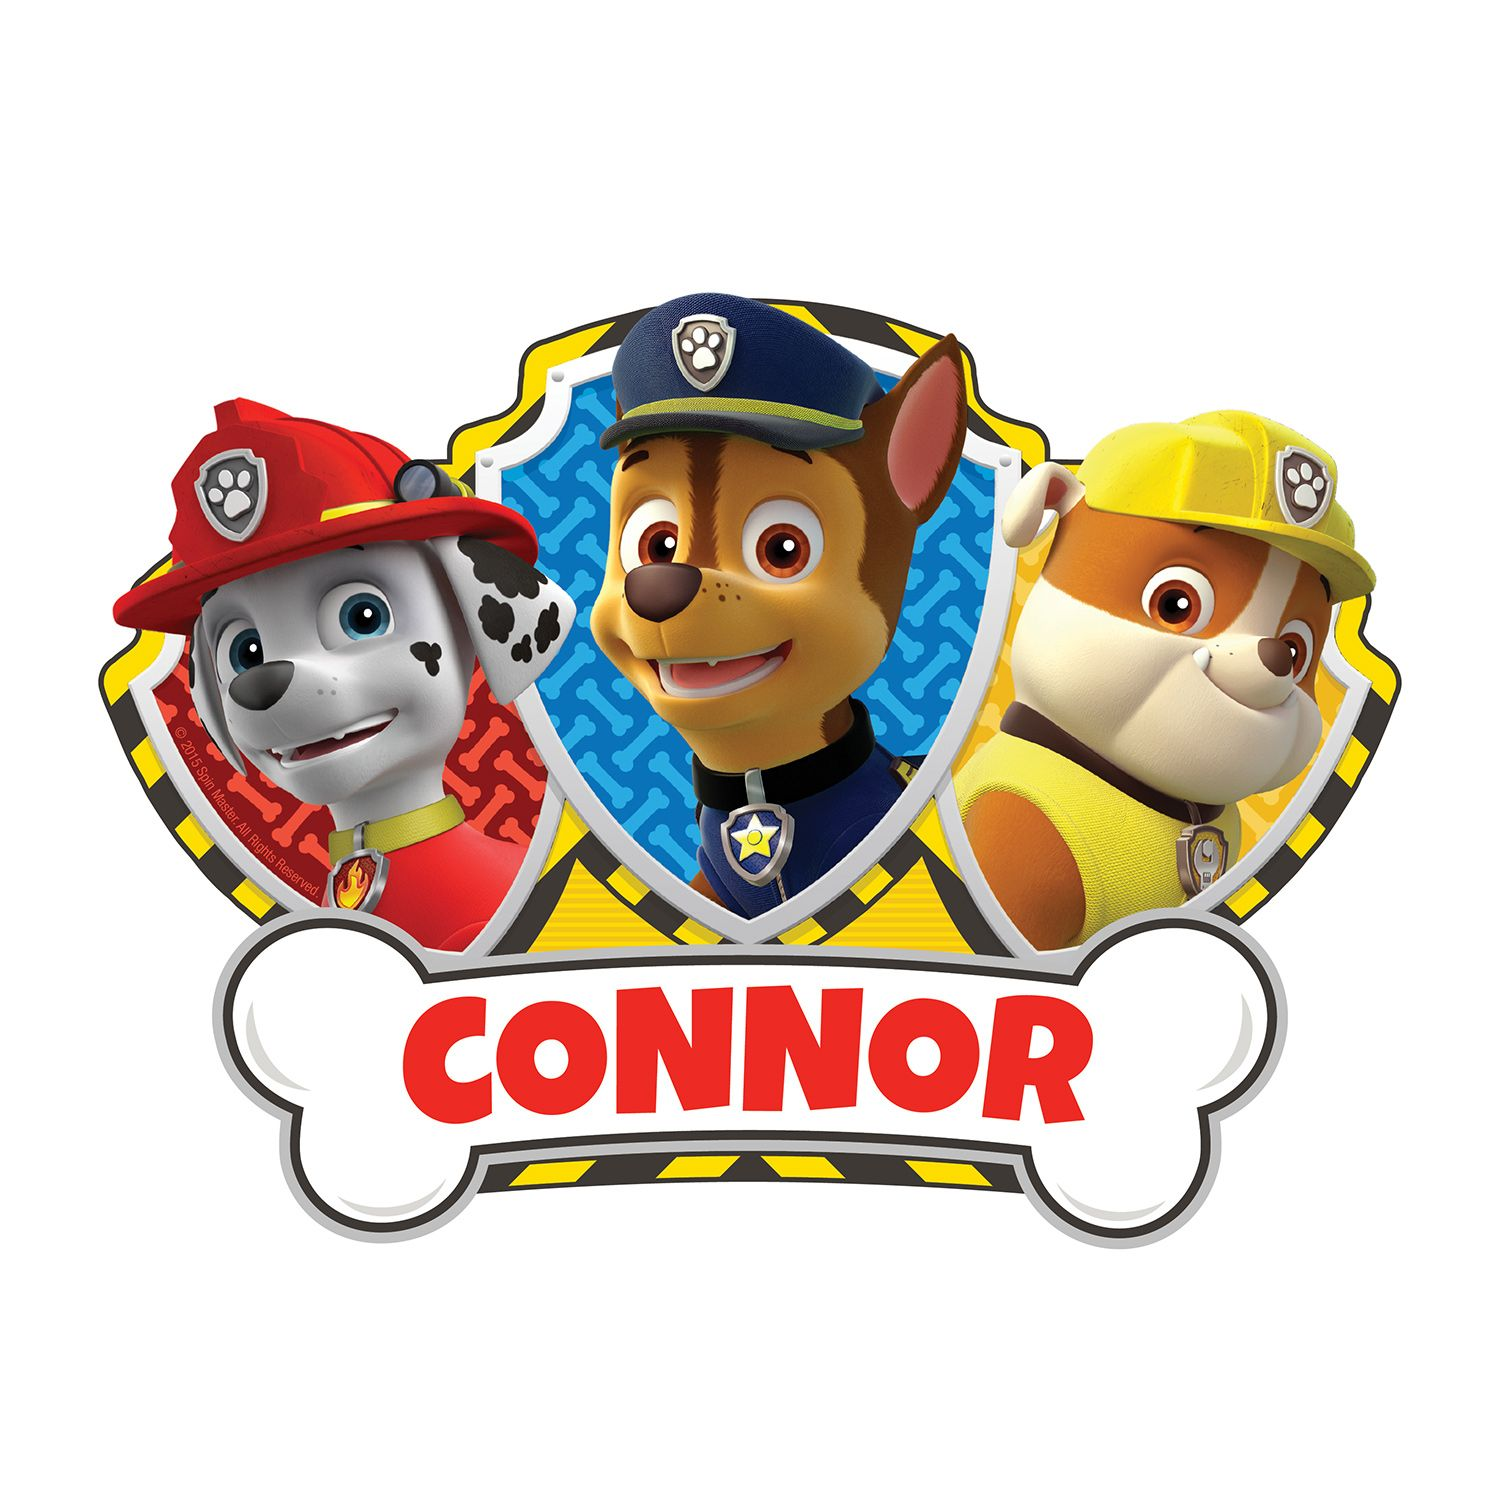 paw patrol chase and pups easy move canvas decal personalized paw patrol chase and pups easy move canvas decal personalized wall decor decor